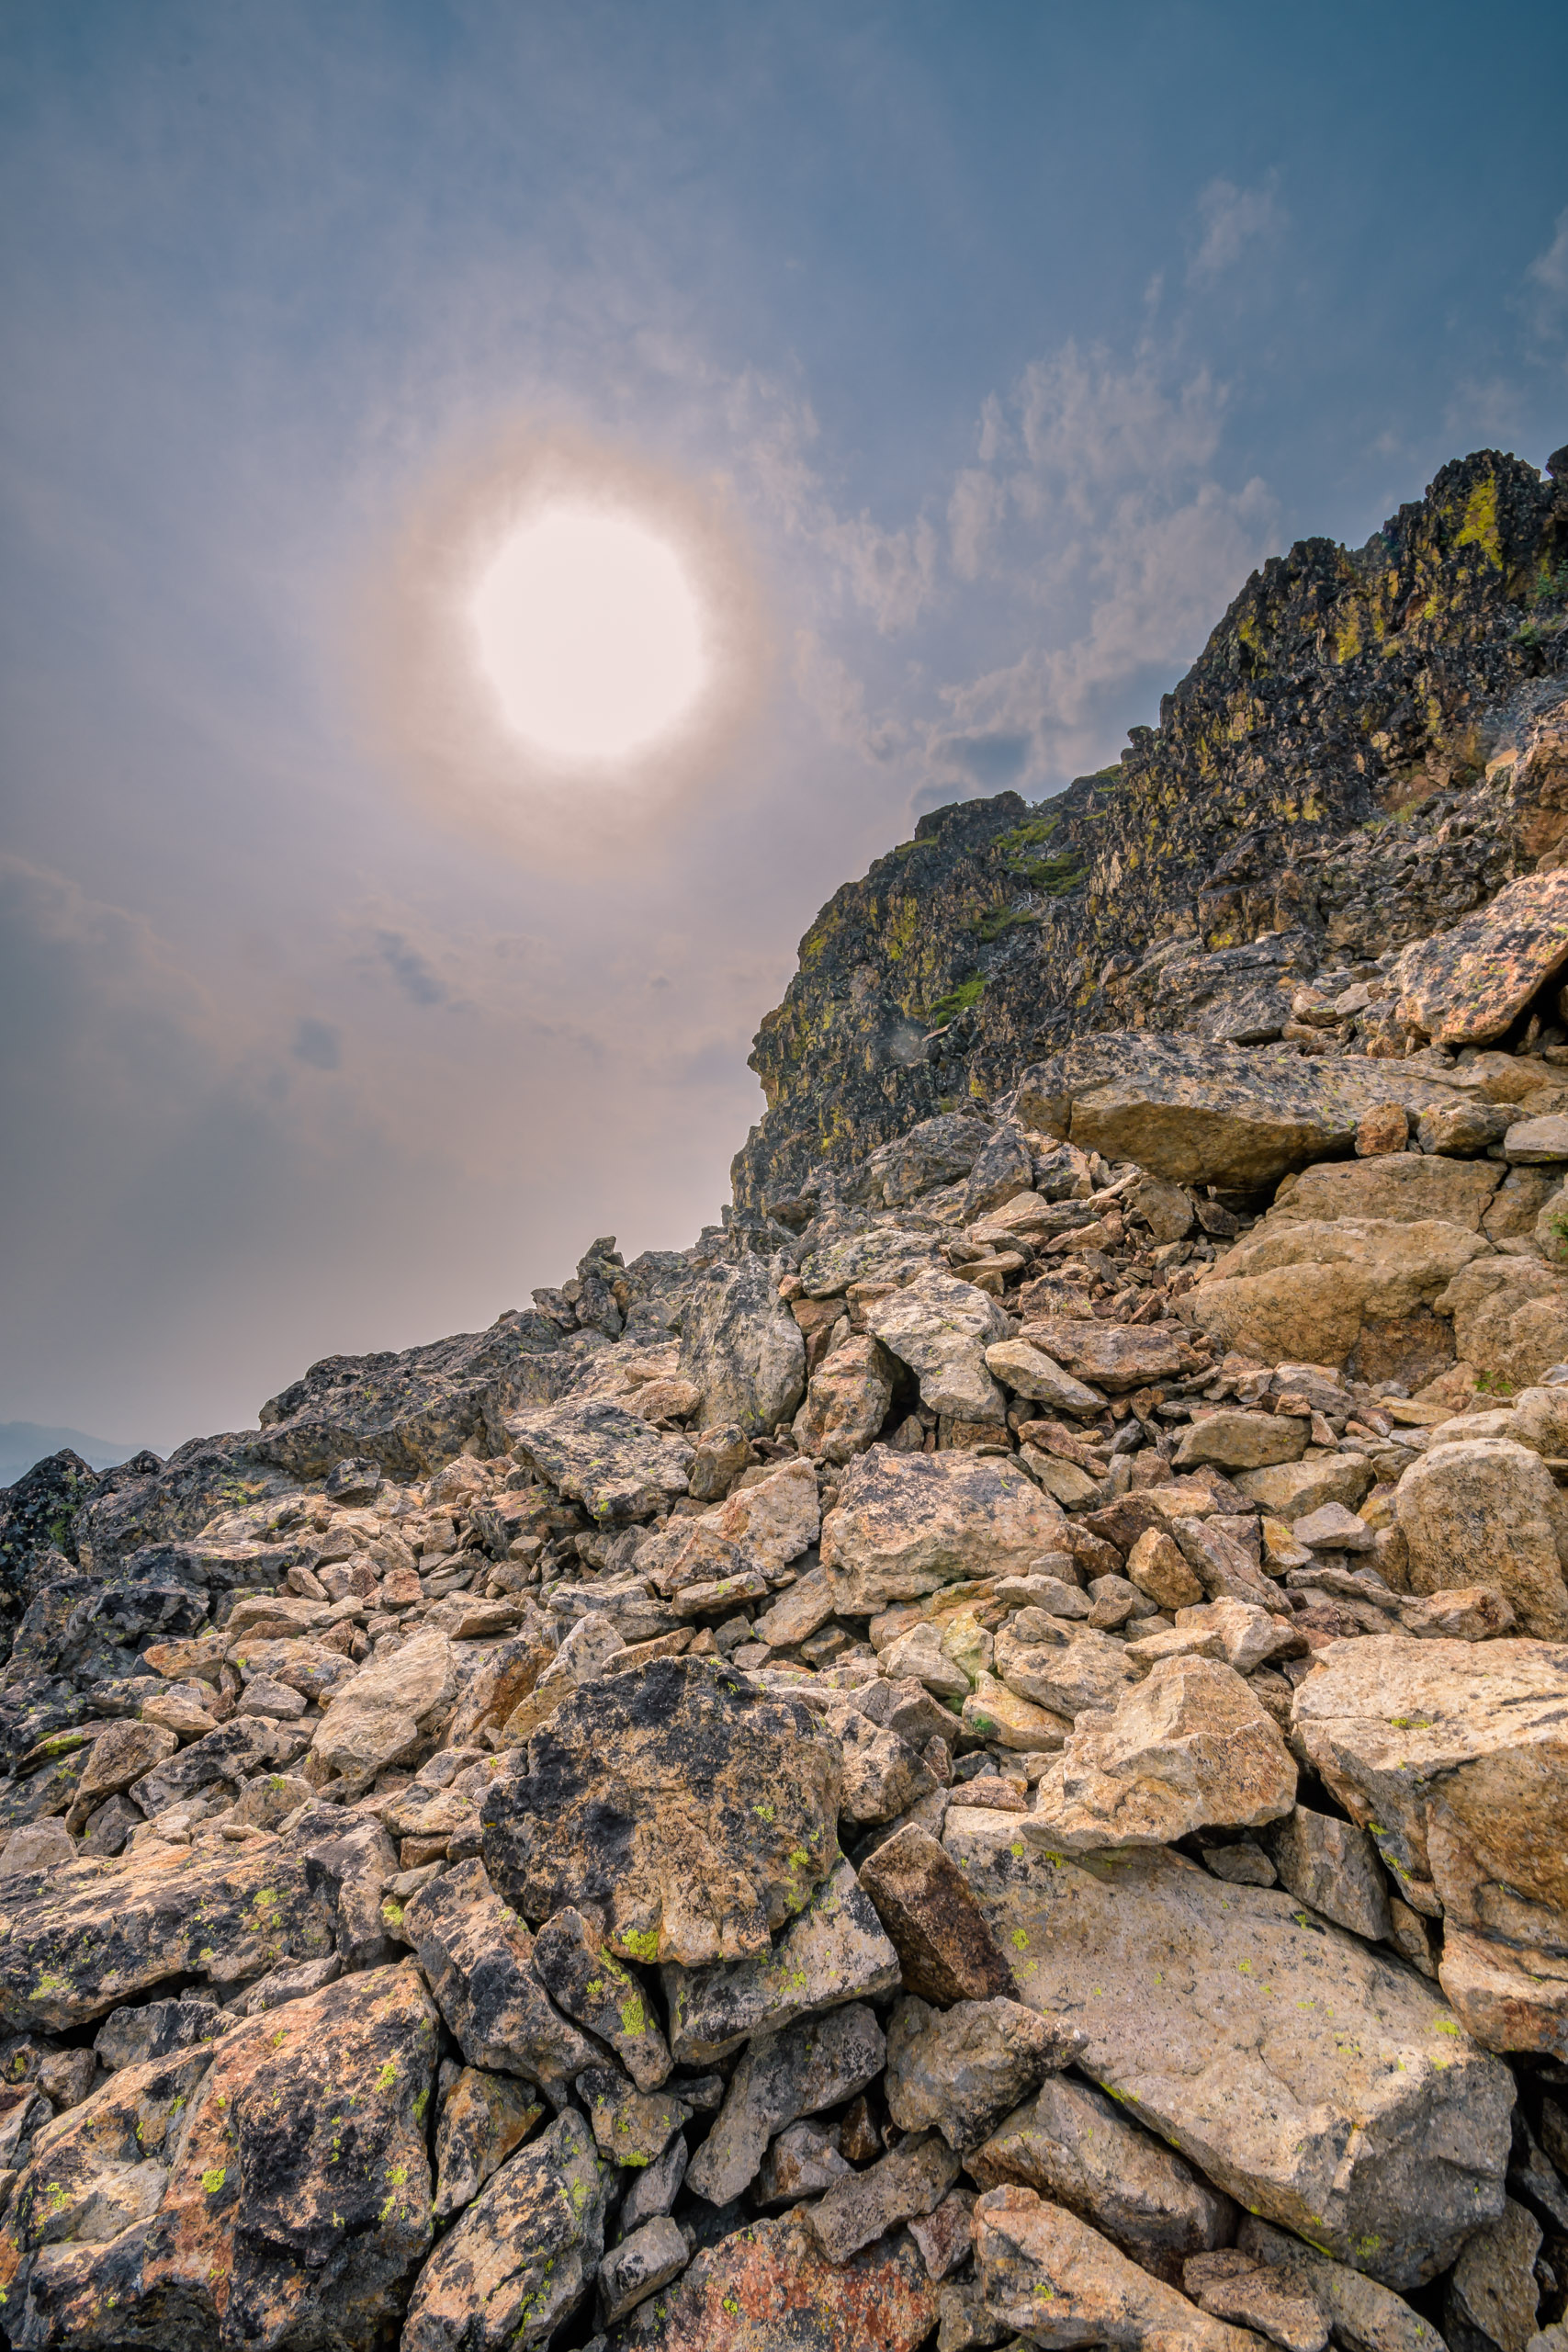 Scrambling over the talus and boulders to the top